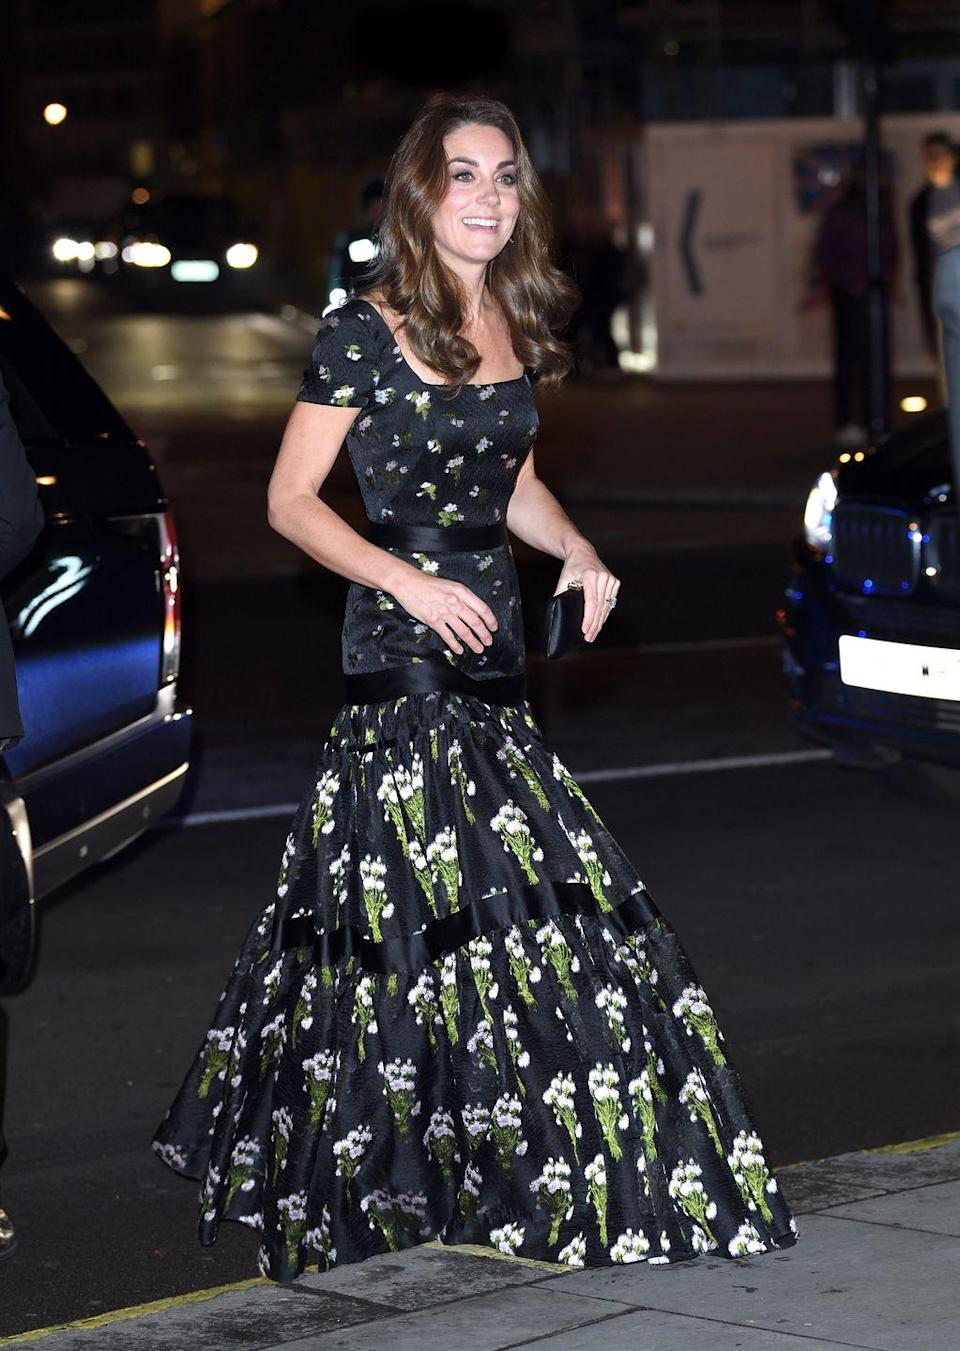 """<p>Kate Middleton attended the <a href=""""https://www.townandcountrymag.com/style/fashion-trends/a26789213/kate-middleton-alexander-mcqueen-national-portrait-gallery-gala-2019/"""" rel=""""nofollow noopener"""" target=""""_blank"""" data-ylk=""""slk:National Portrait Gallery Gala"""" class=""""link rapid-noclick-resp"""">National Portrait Gallery Gala</a> wearing a re-tailored Alexander McQueen dress, that she previously wore in 2017, <a href=""""https://go.redirectingat.com?id=74968X1596630&url=https%3A%2F%2Fwww.neimanmarcus.com%2Fc%2Fdesigners-kiki-mcdonough-cat46520802&sref=https%3A%2F%2Fwww.townandcountrymag.com%2Fstyle%2Ffashion-trends%2Fnews%2Fg1633%2Fkate-middleton-fashion%2F"""" rel=""""nofollow noopener"""" target=""""_blank"""" data-ylk=""""slk:Kiki McDonough earrings"""" class=""""link rapid-noclick-resp"""">Kiki McDonough earrings</a>, and a Prada clutch. </p>"""